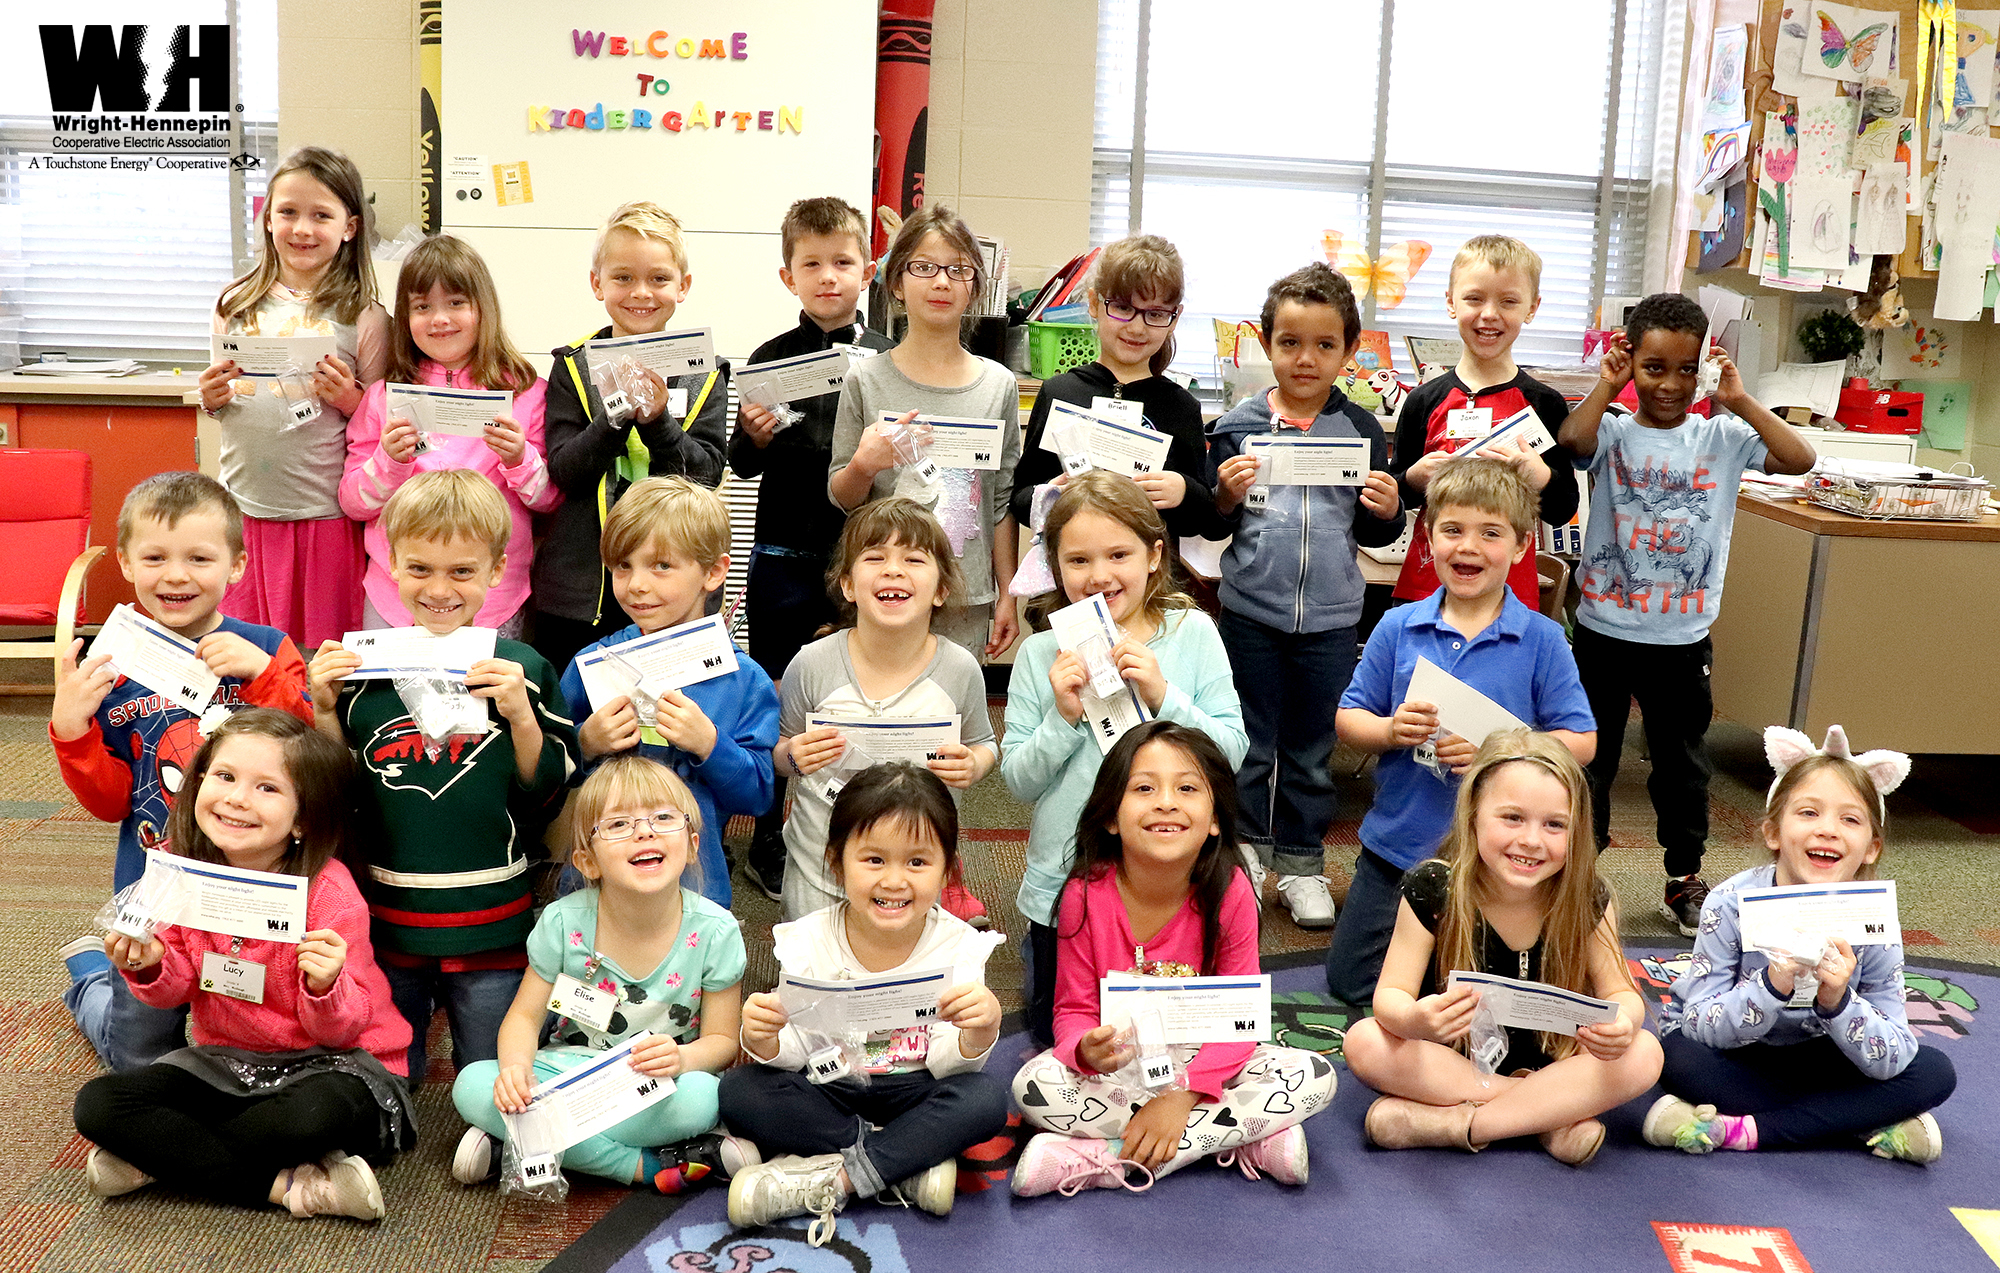 Wright-Hennepin donates LED night lights to kindergarten students.